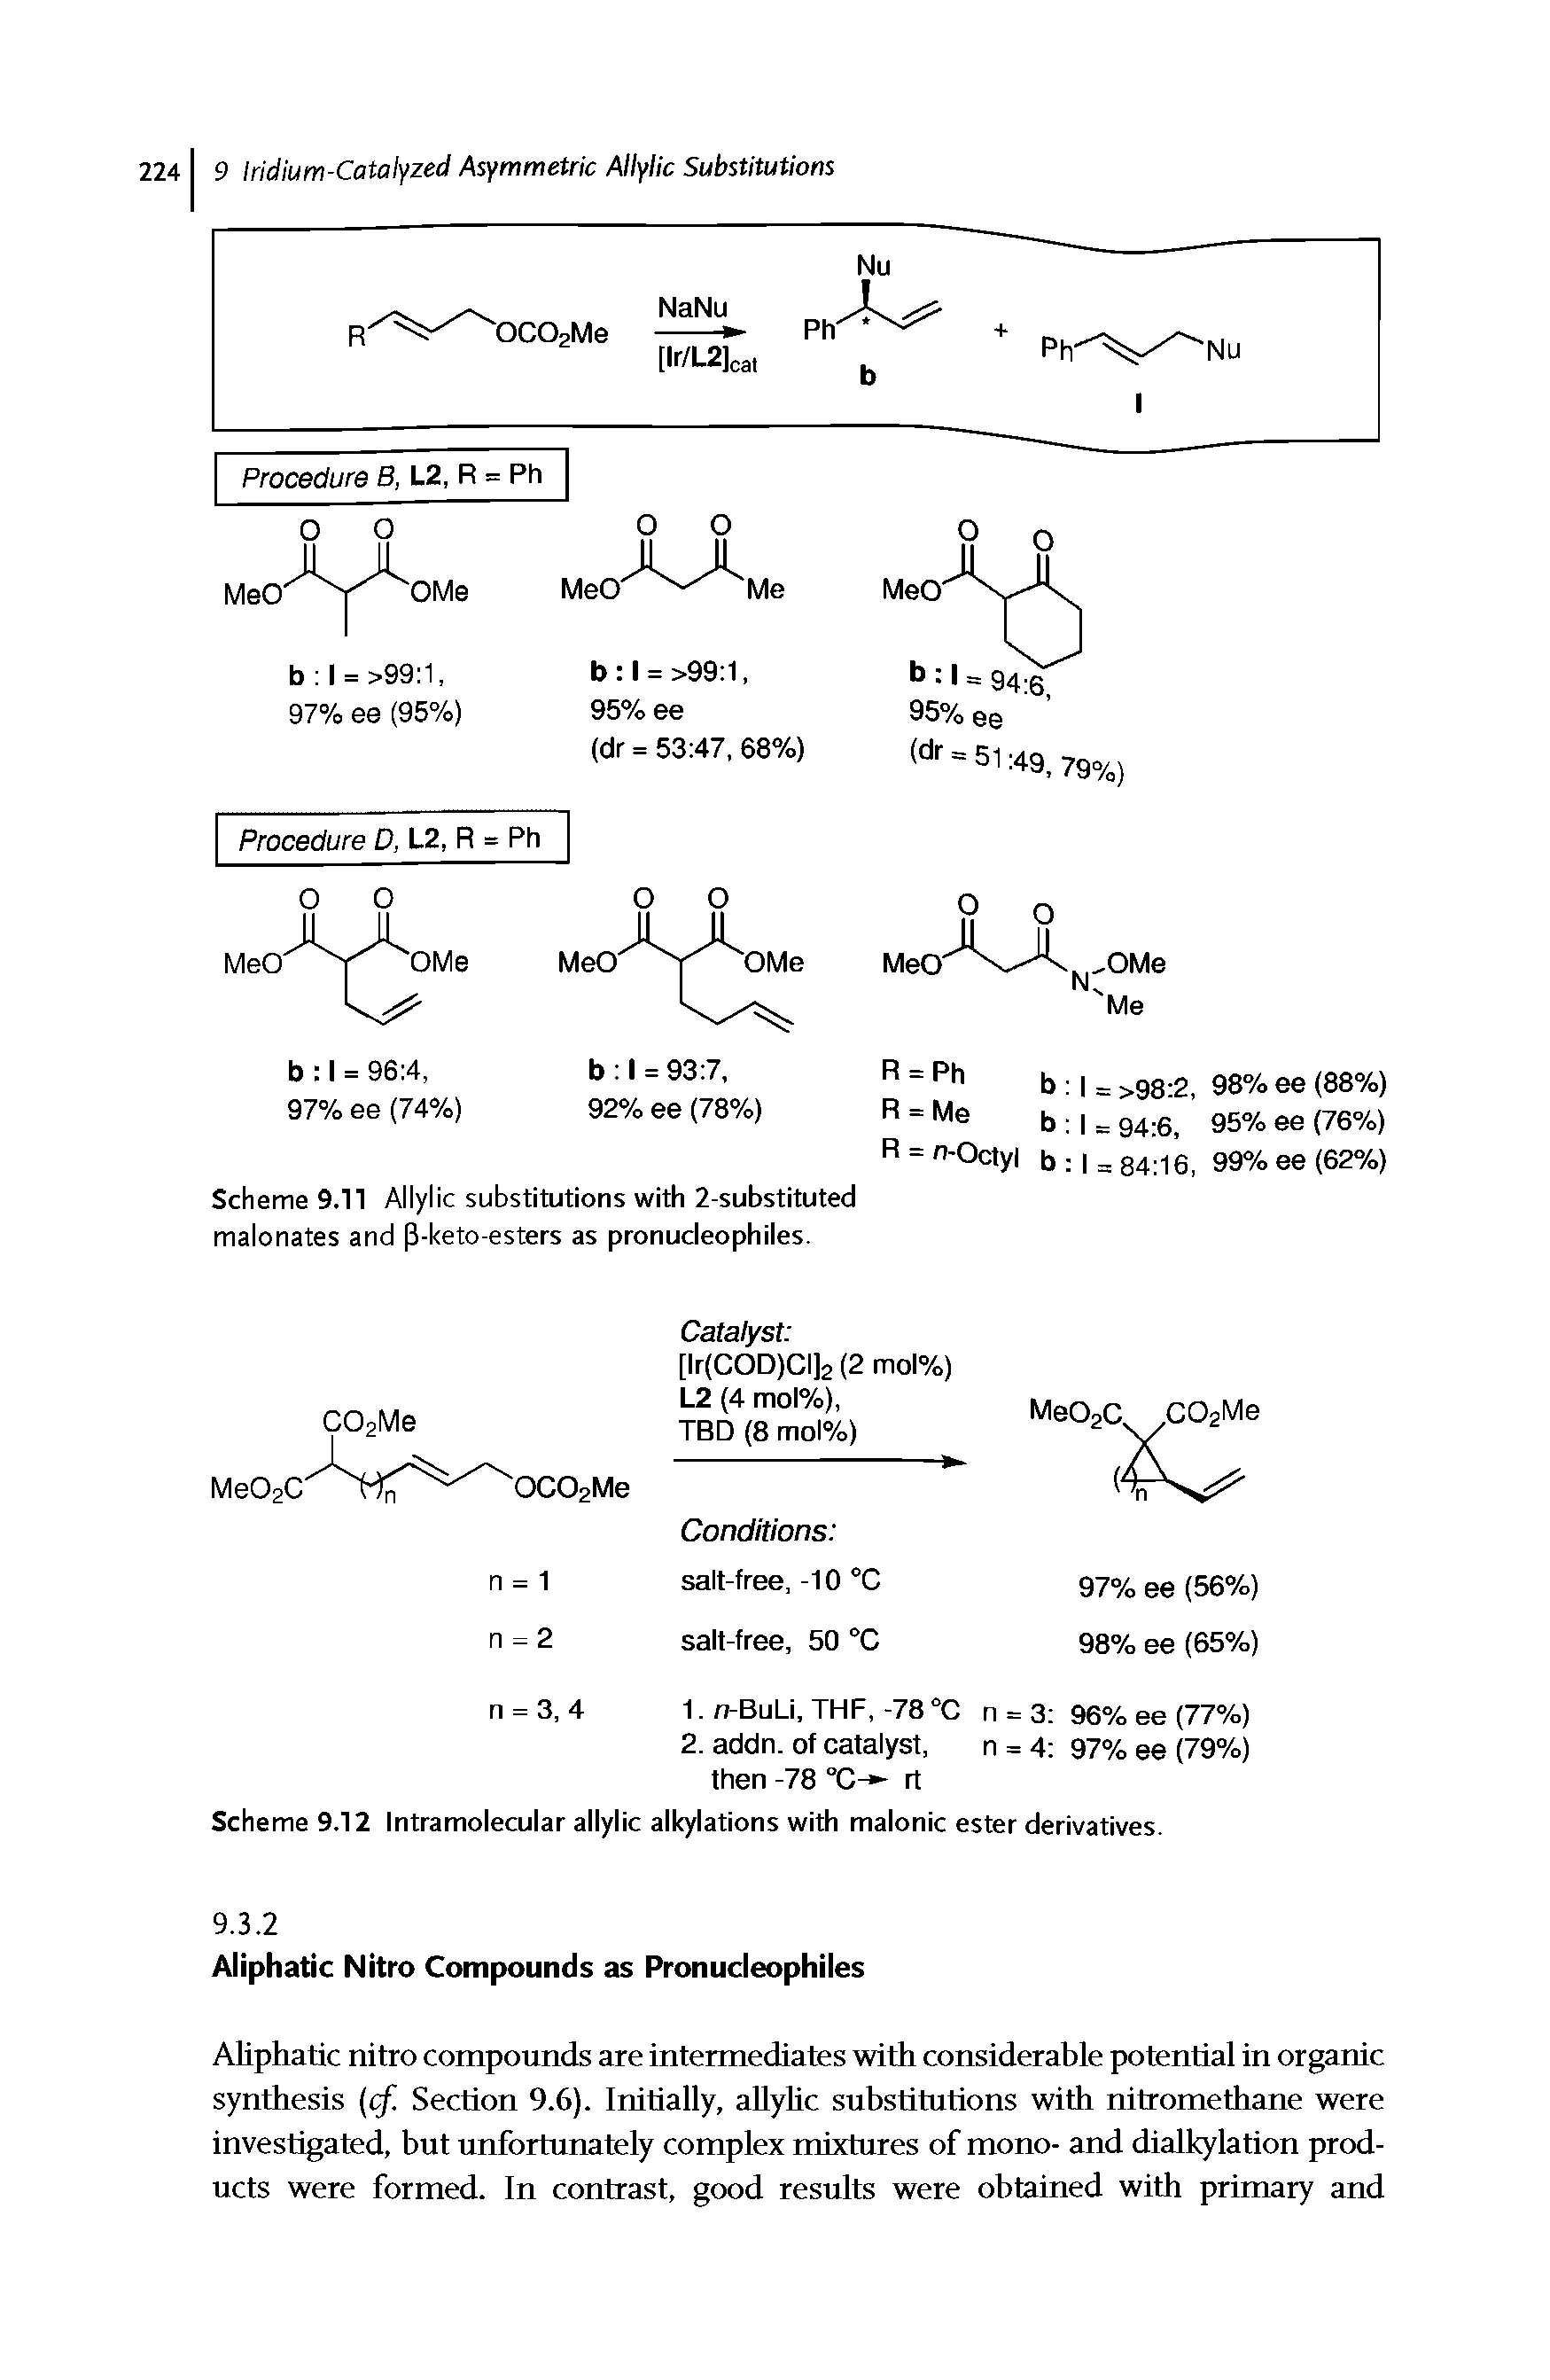 "Scheme 9.12 <a href=""/info/allyl_pd_alkylation_intramolecular"">Intramolecular allylic alkylations</a> <a href=""/info/with_malonate_esters"">with malonic ester</a> derivatives."